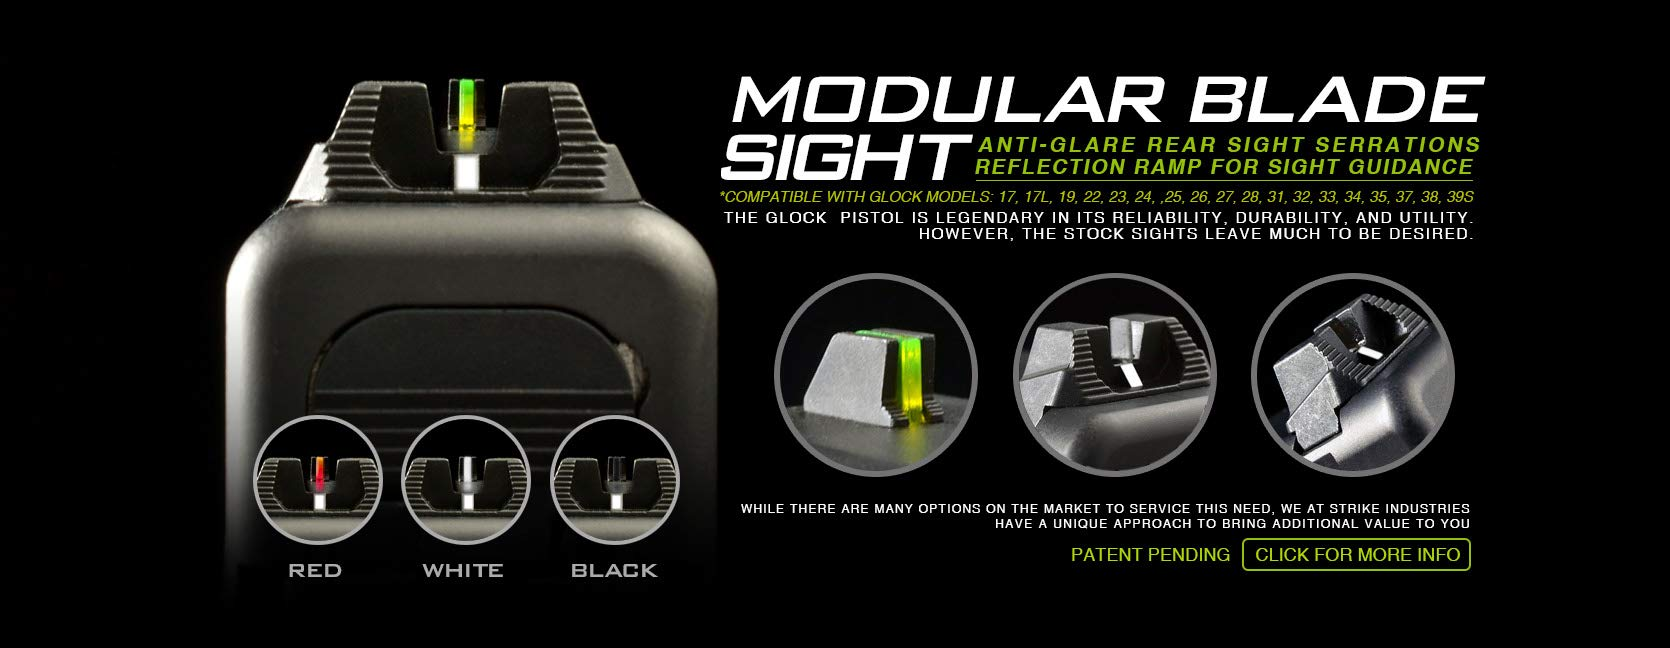 Strike Industries Modular Blade Sights for Glock - Fiber Optic Front and Rear Sight for Handgun with 4 Colors by Strike Industries